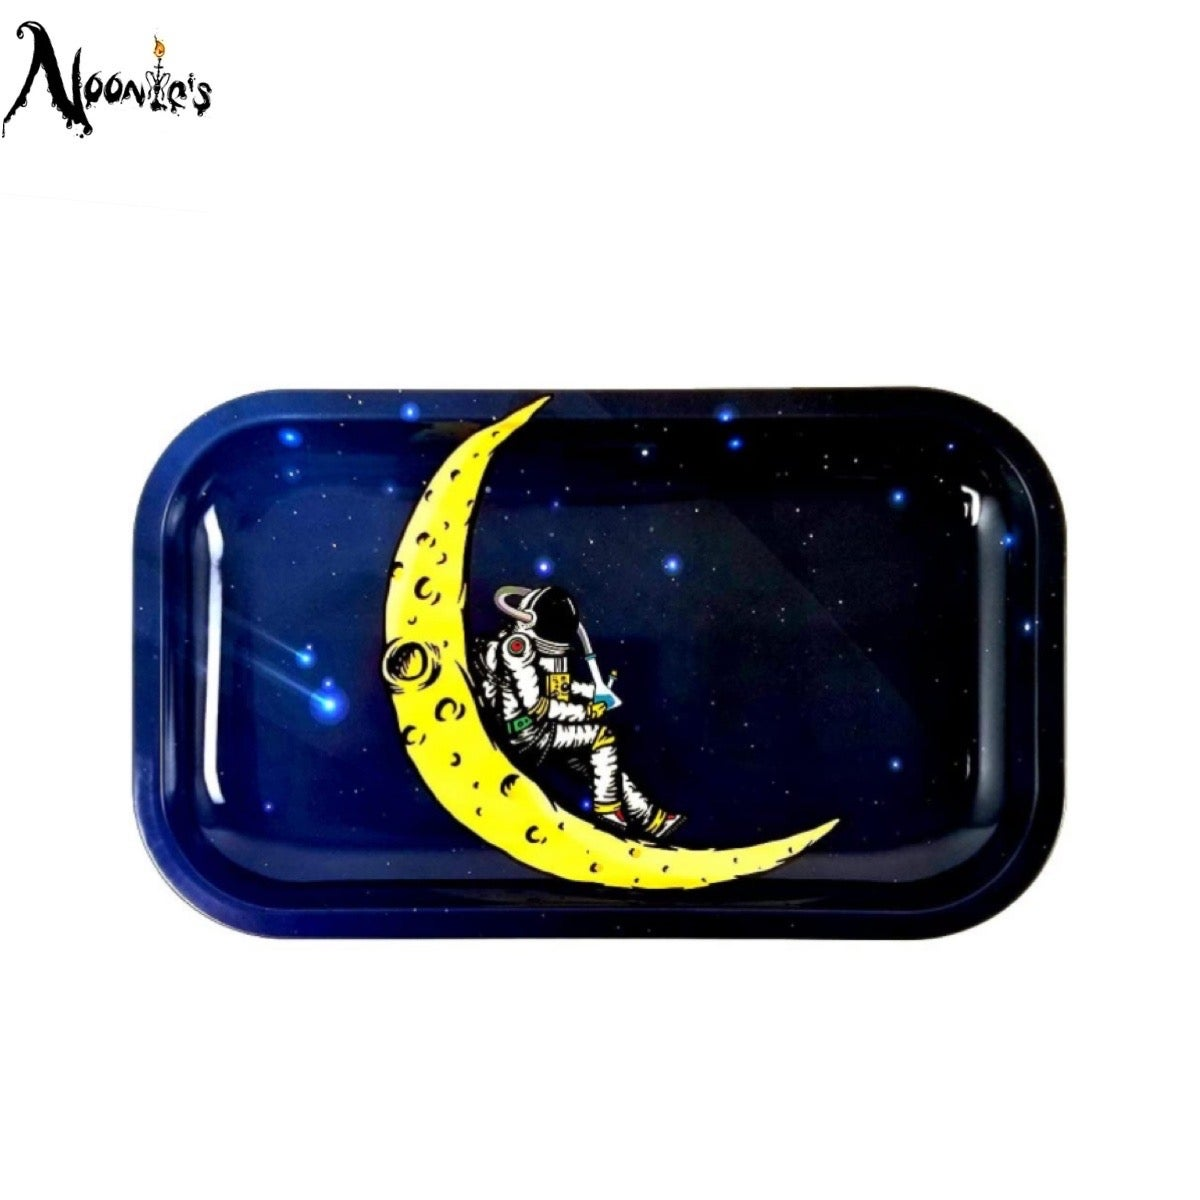 Image of High over the moon rolling tray (named by shesforeignonly)